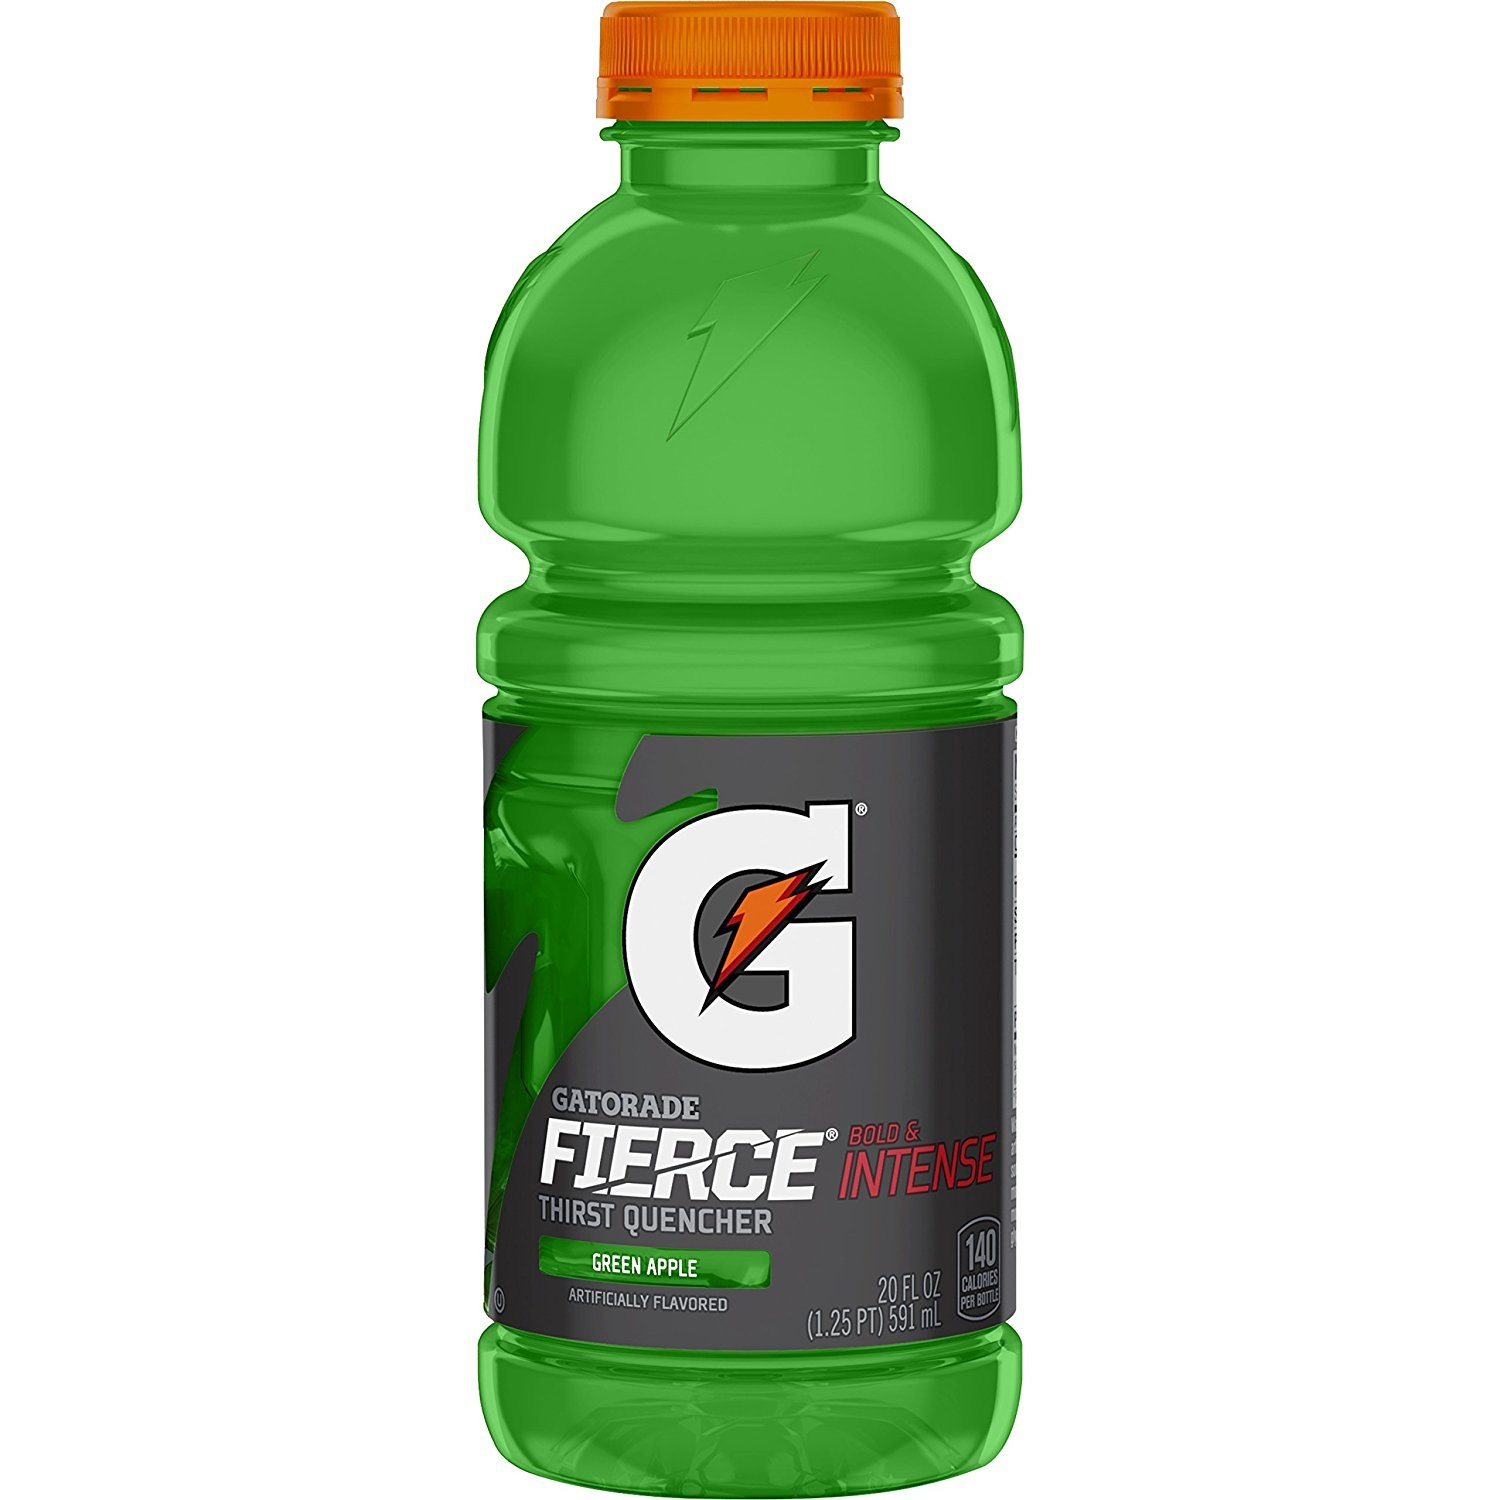 Gatorade Thirst Quencher Sports Drink, Green Apple, 20 Fl Oz, Pack of 12